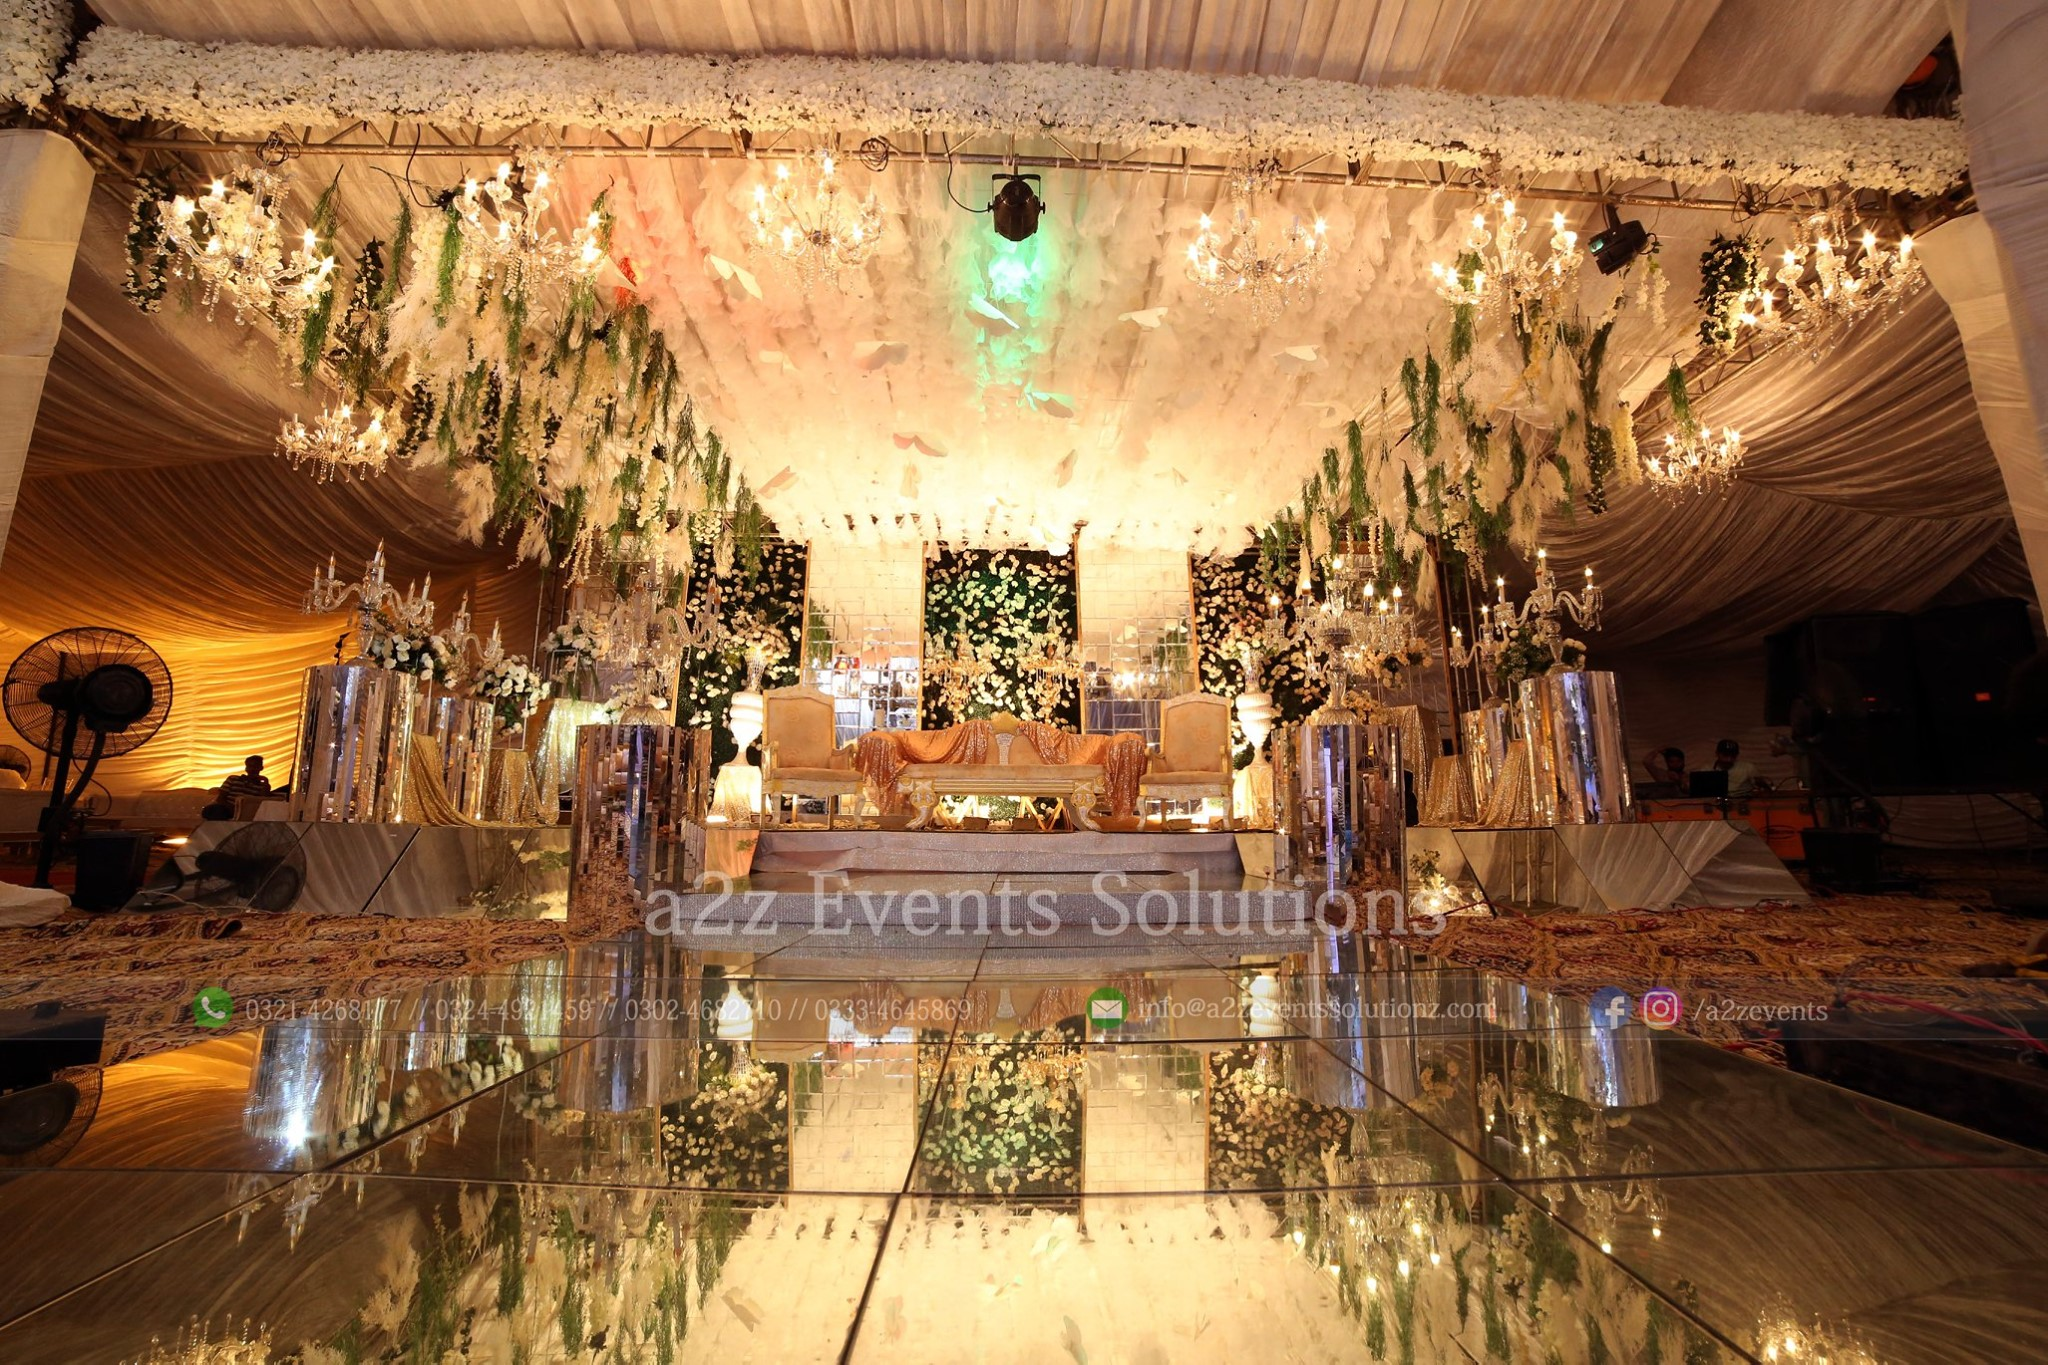 grand stage, walima stage